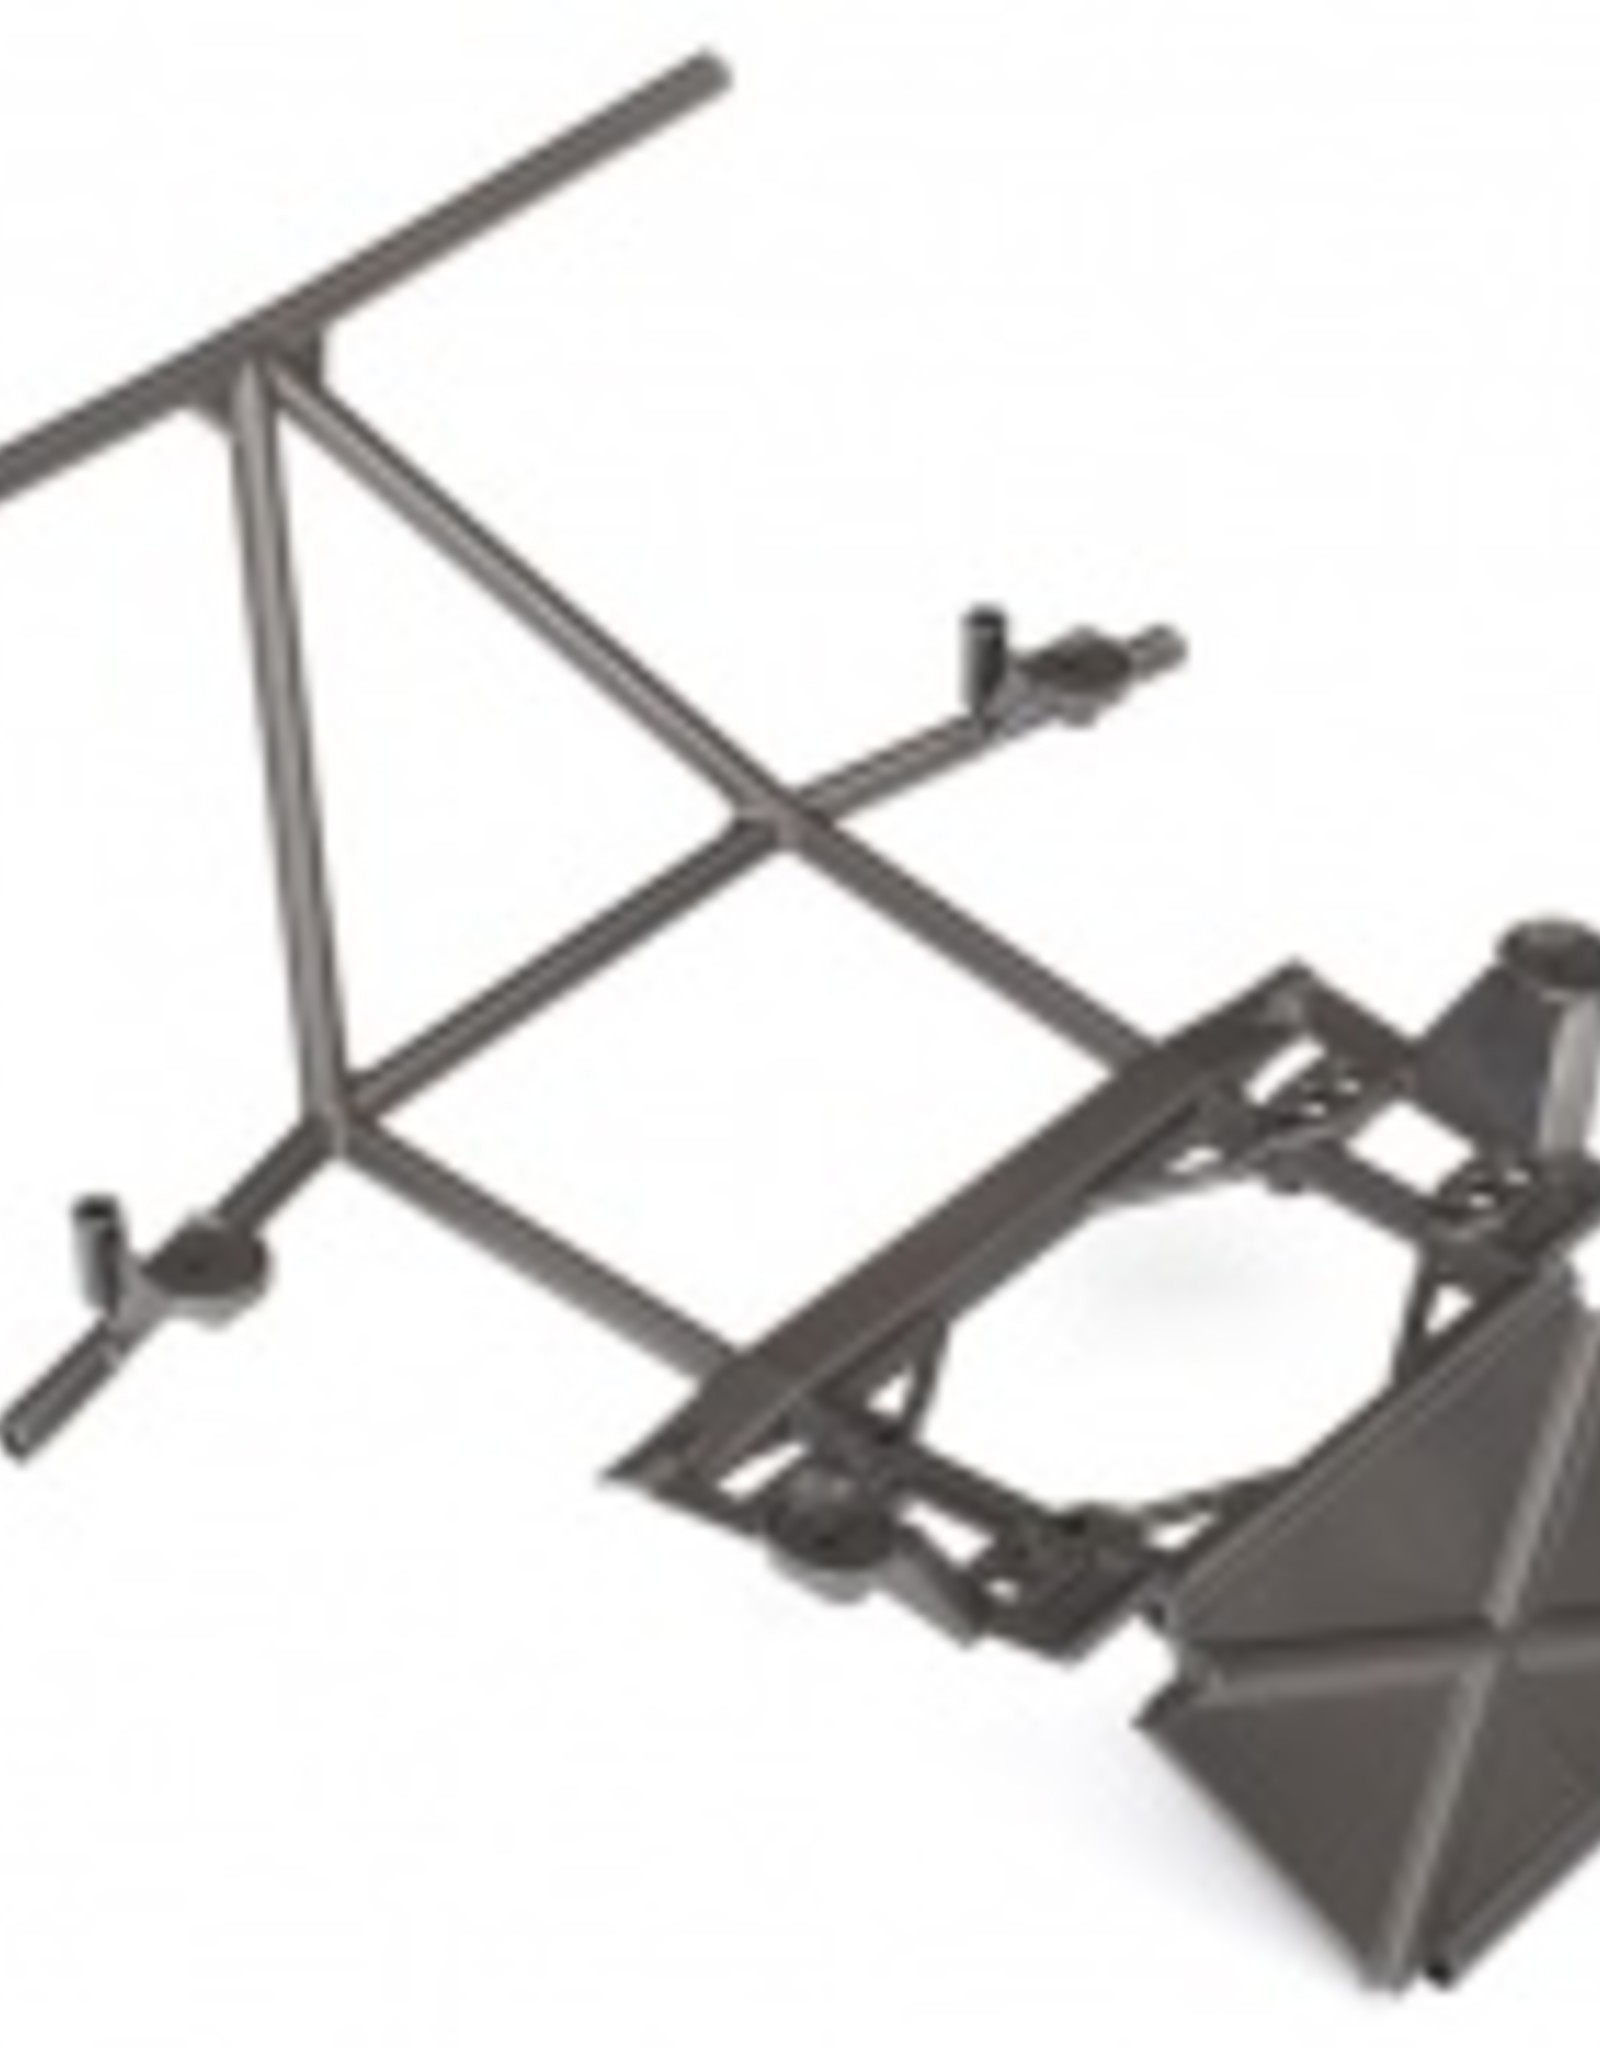 Traxxas Traxxas Unlimited Desert Racer Tube chassis, center section, front